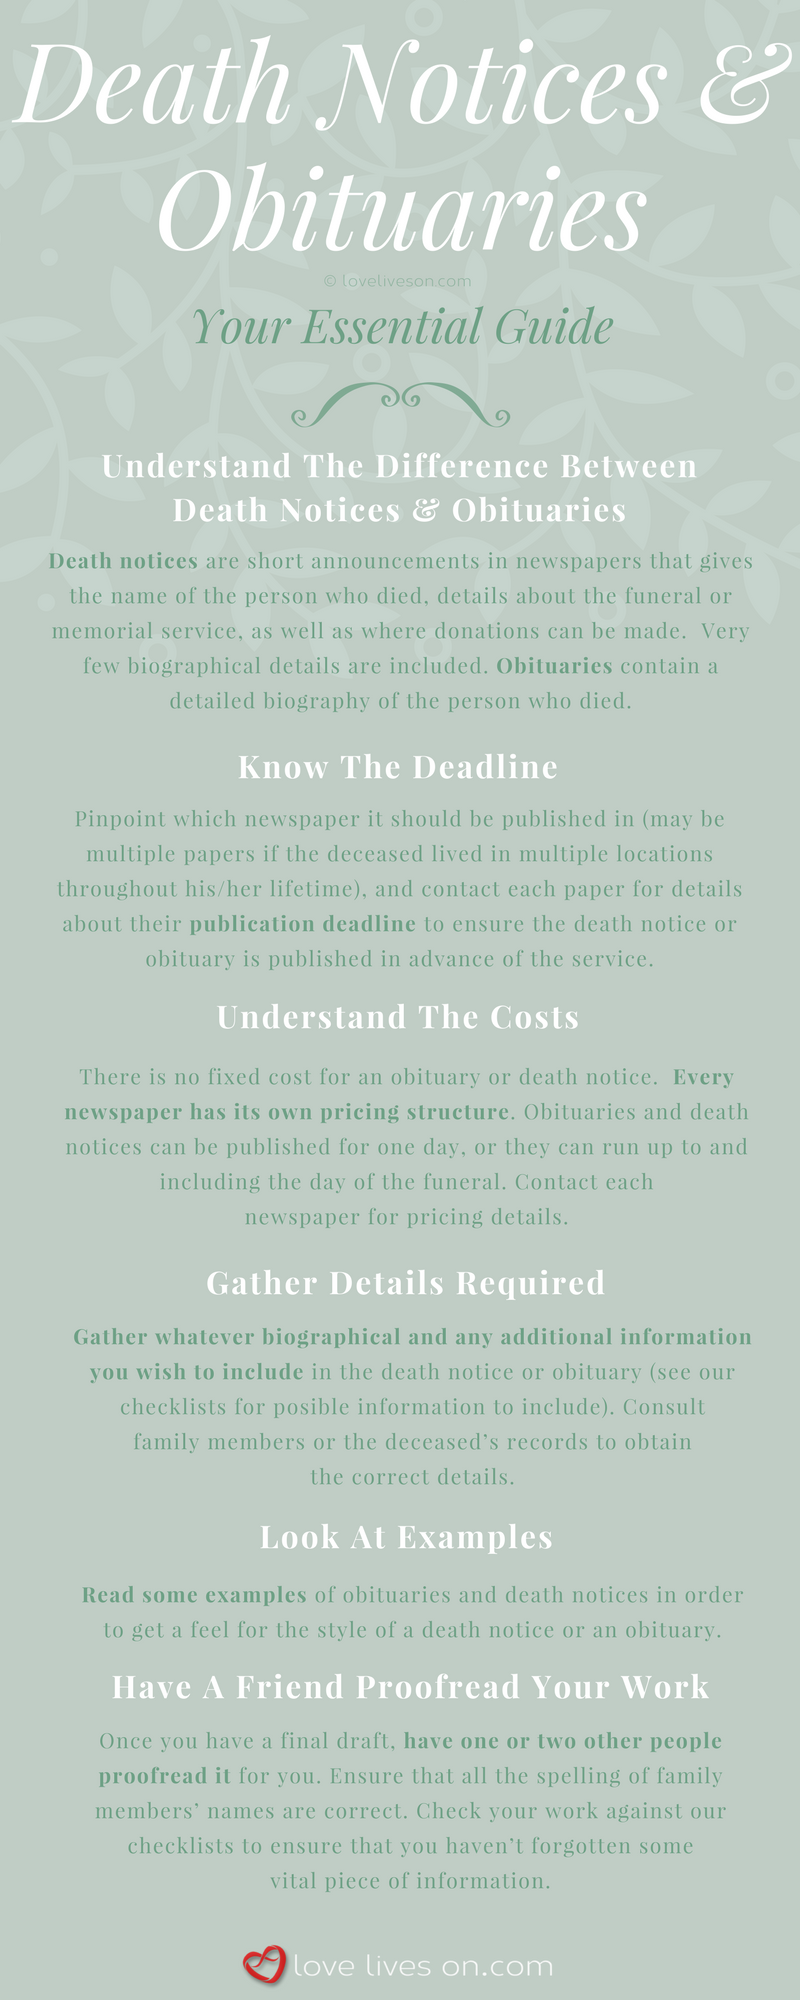 [Infographic] Death Notices & Obituaries Essential Guide